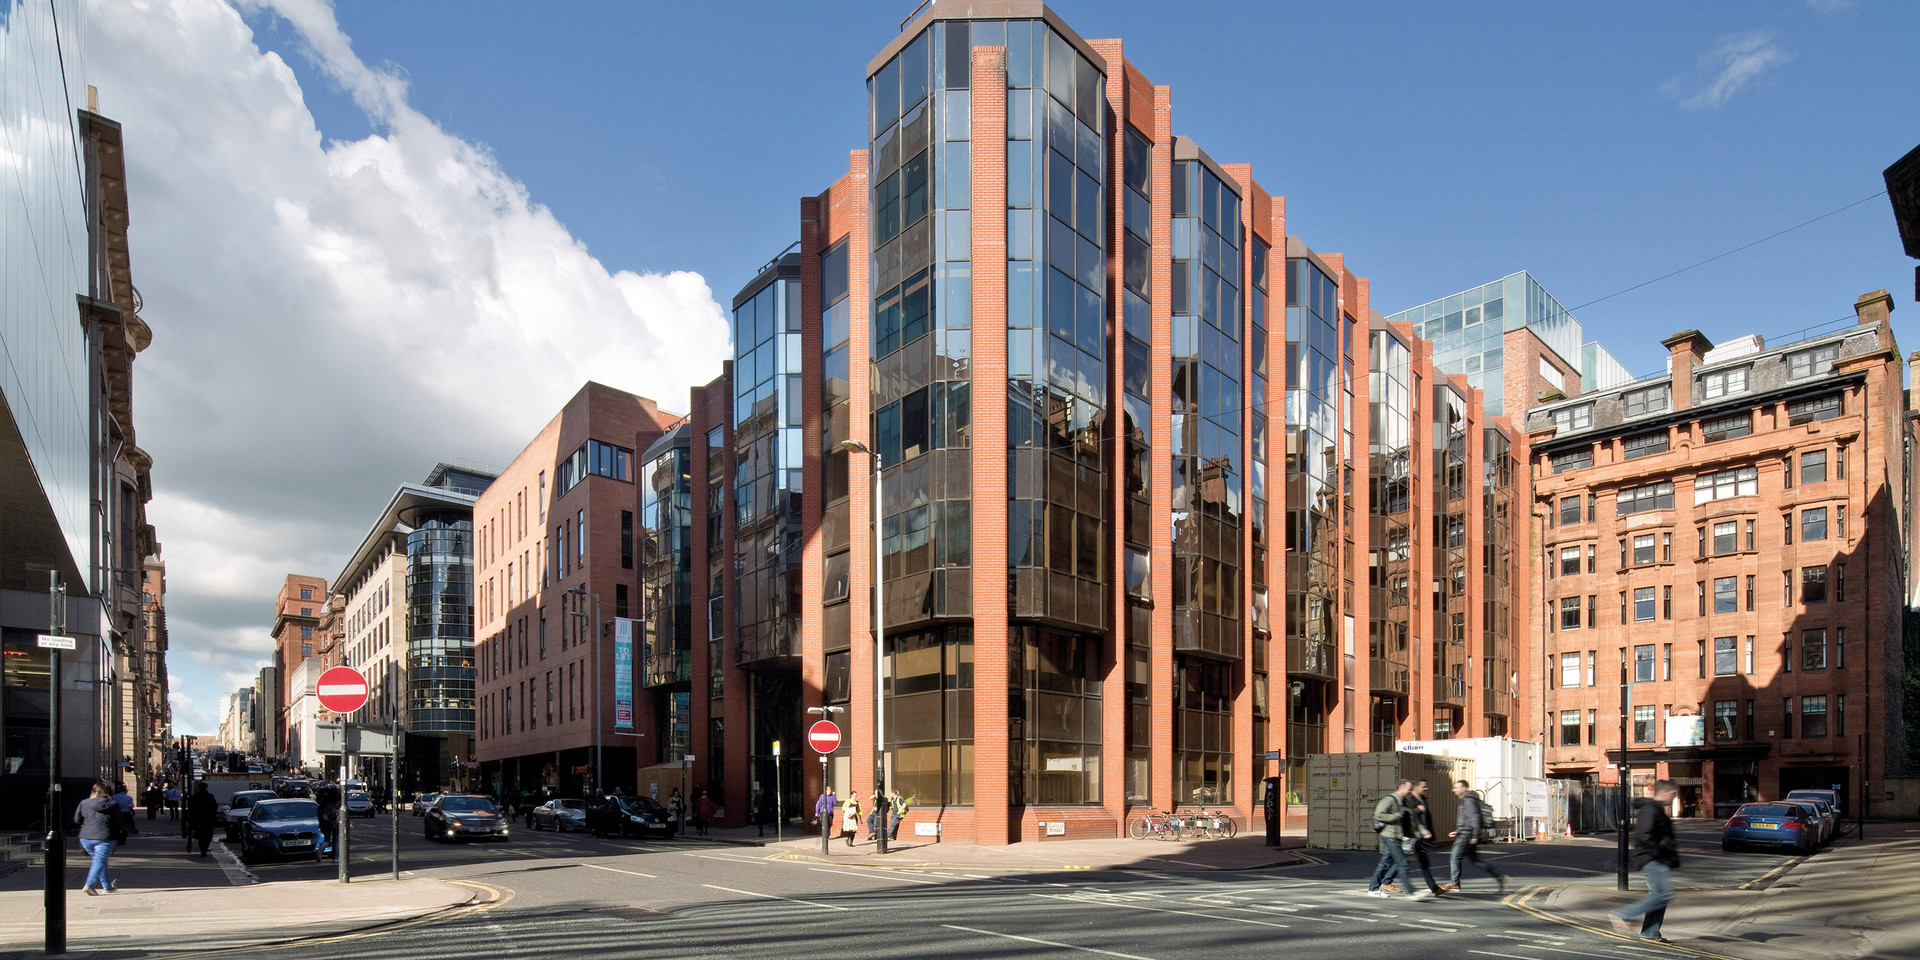 1._Pacific_House,_Glasgow_4021-021©McAte